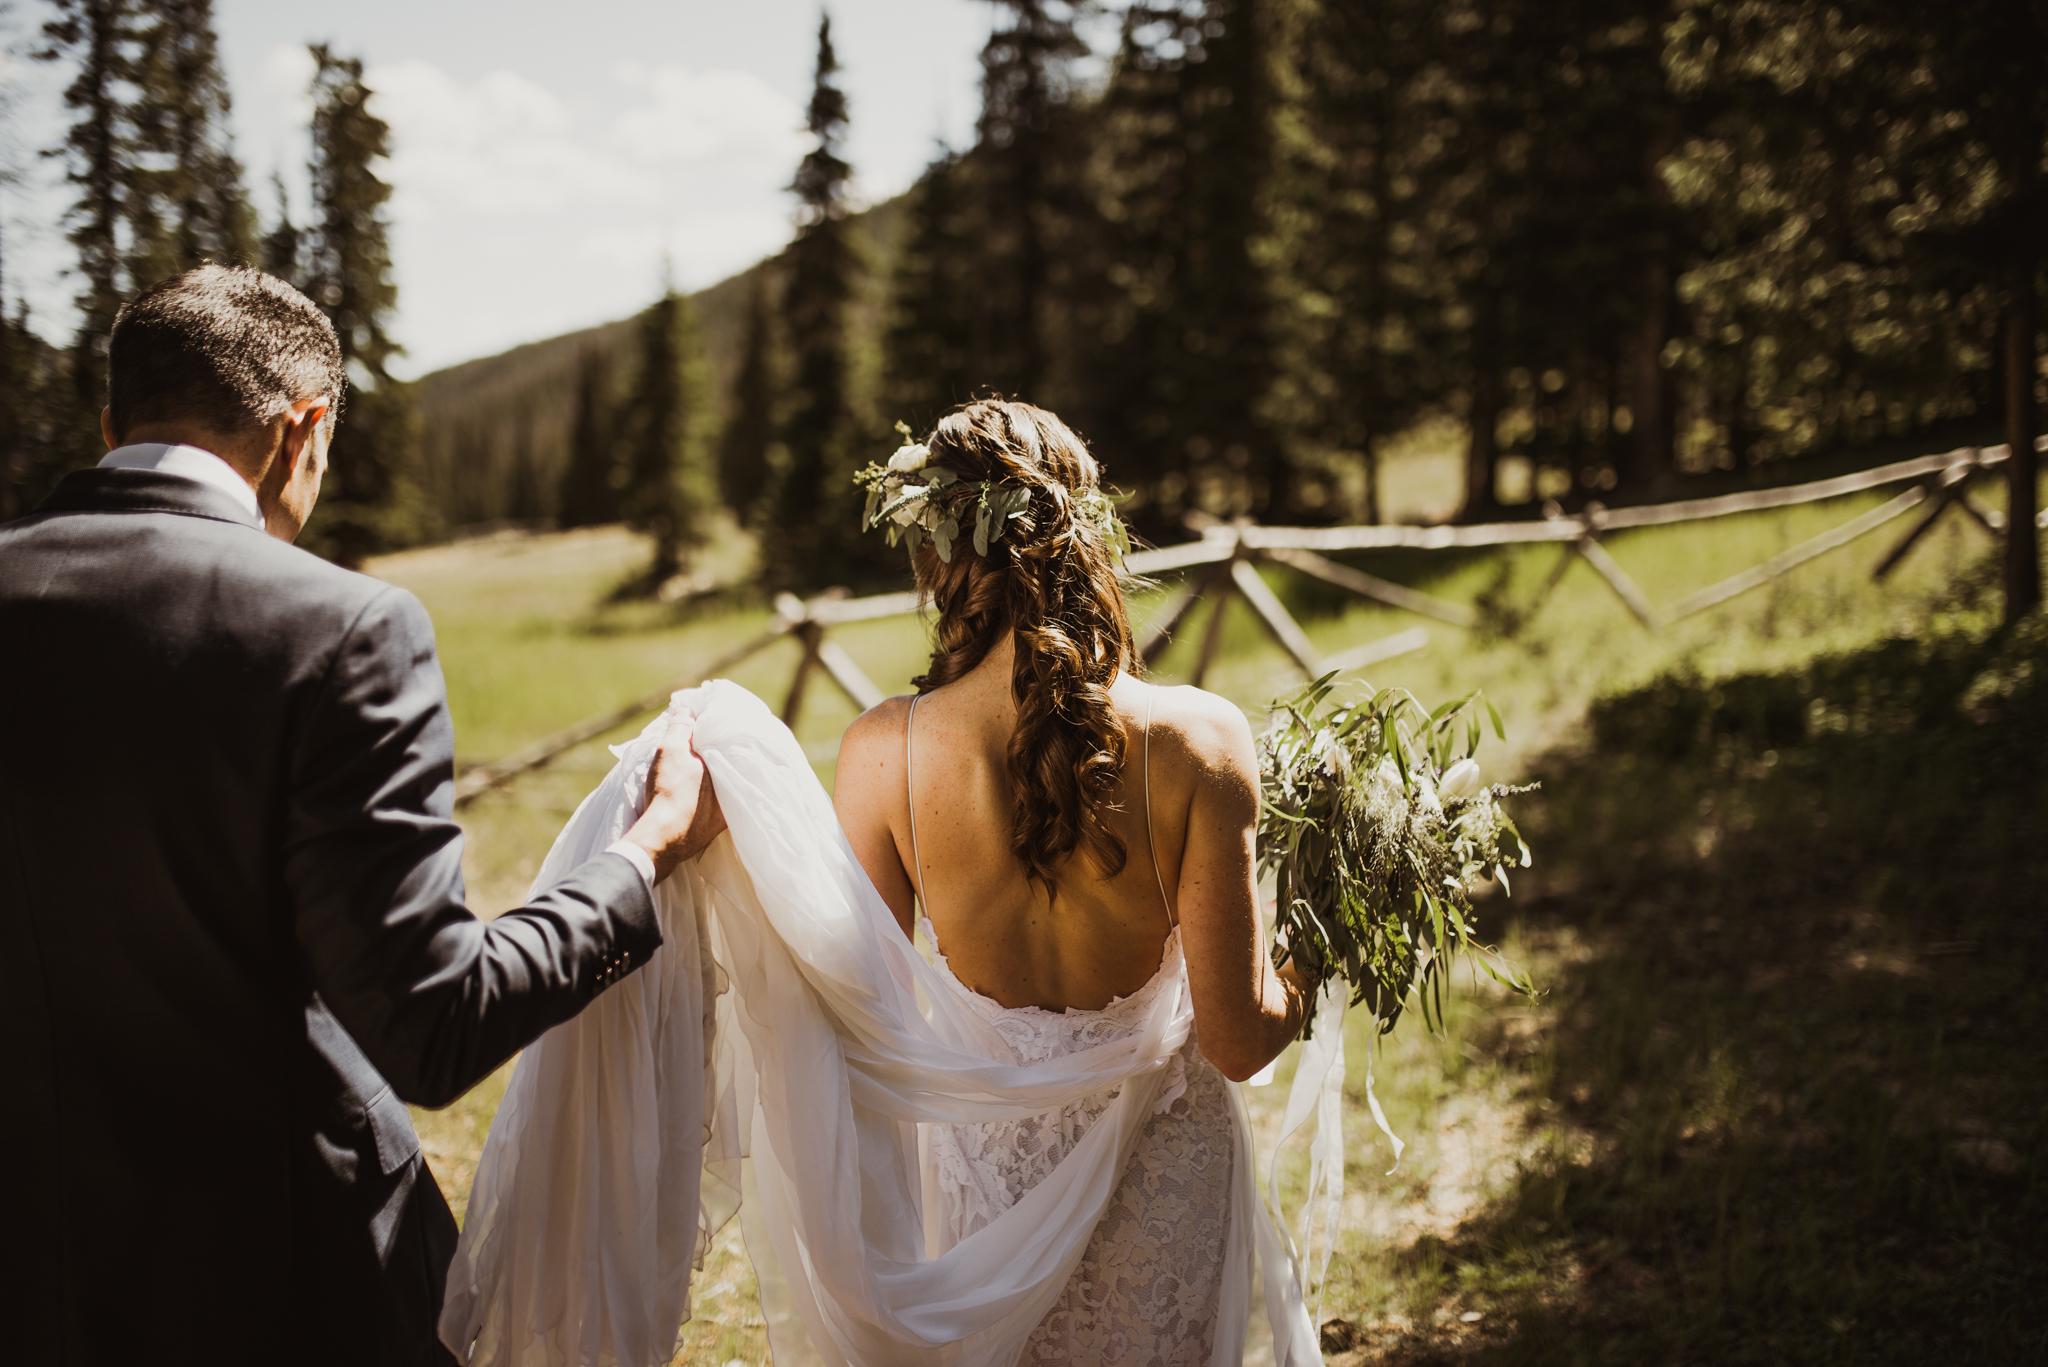 ©Isaiah + Taylor Photography - Estes National Park Adventure Elopement, Colorado Rockies-67.jpg